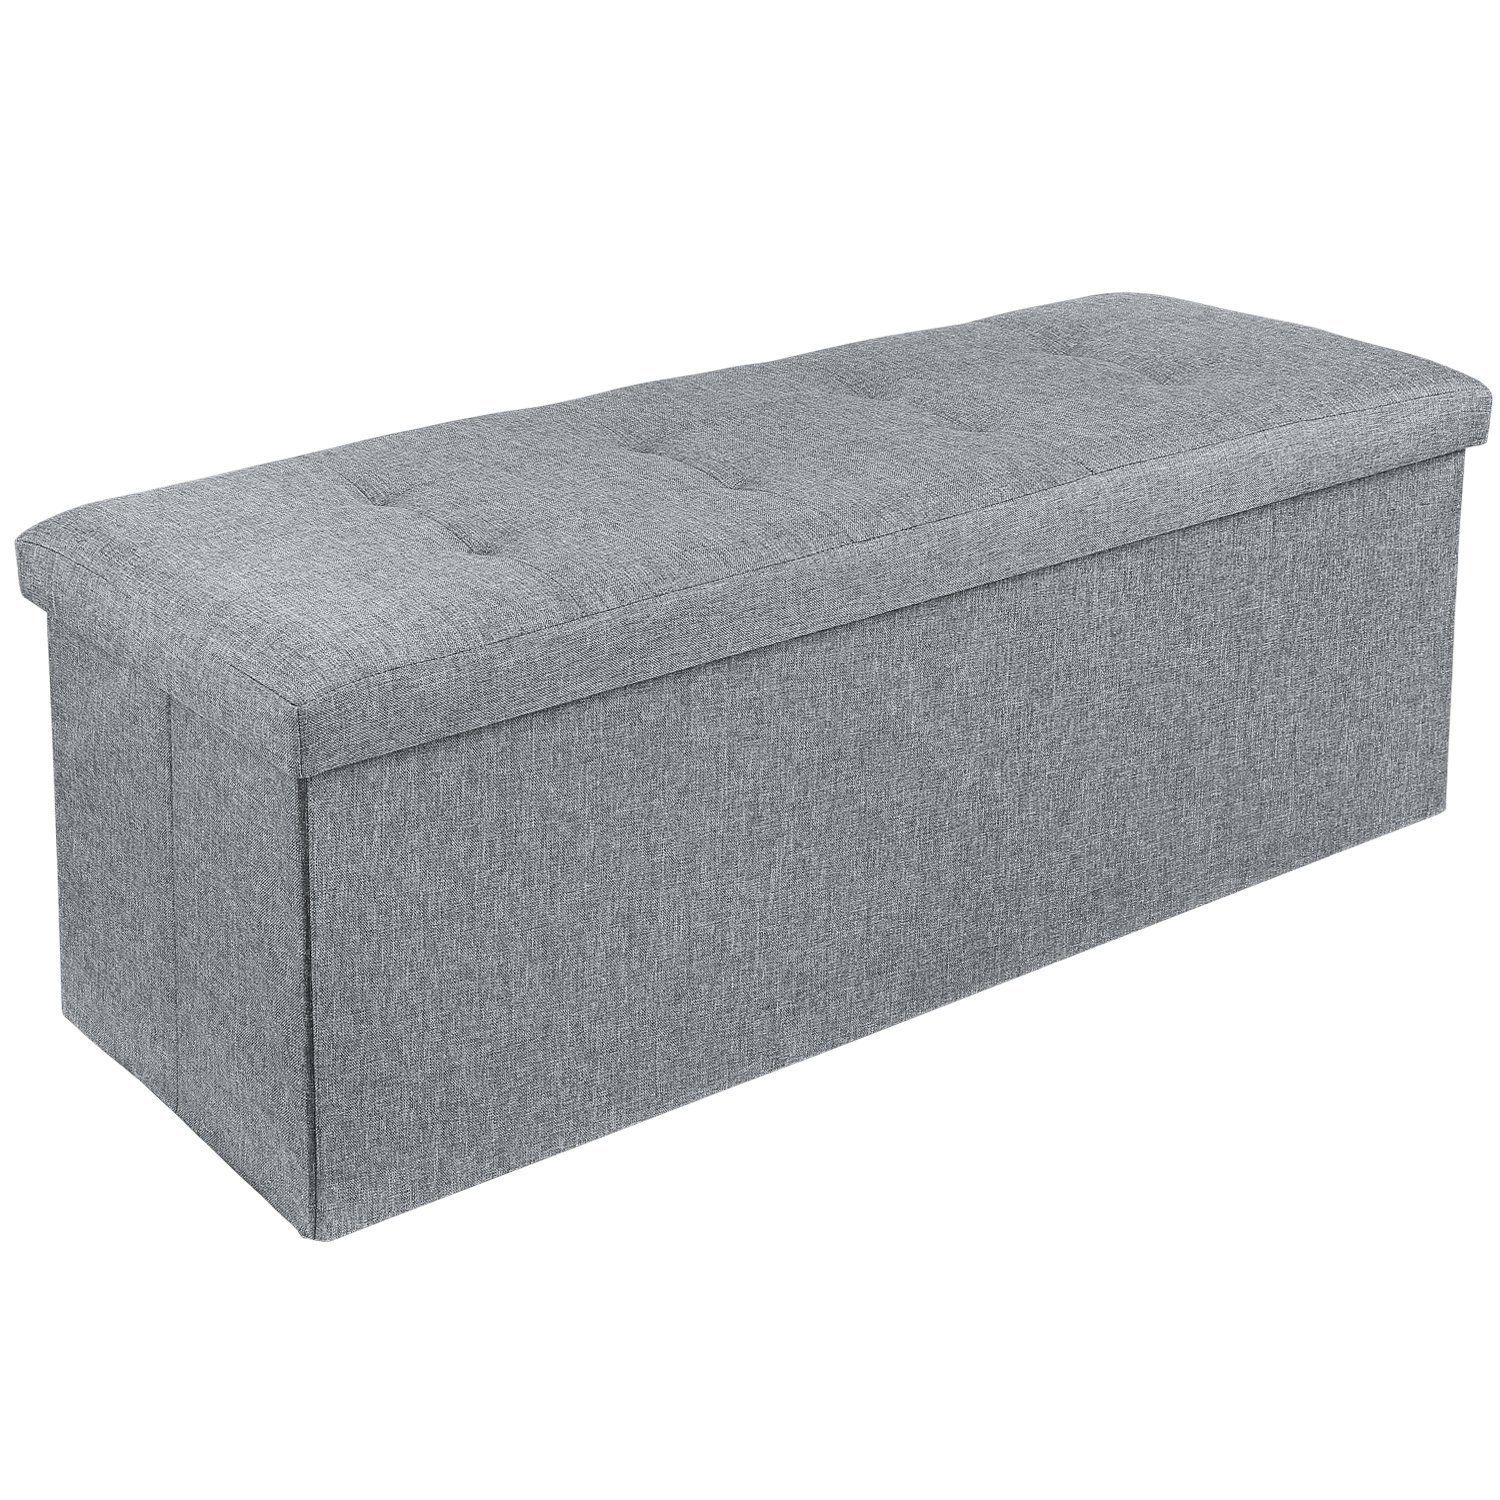 Outstanding Homfa Folding Storage Ottoman Bench Linen Fabric Pouffe Forskolin Free Trial Chair Design Images Forskolin Free Trialorg